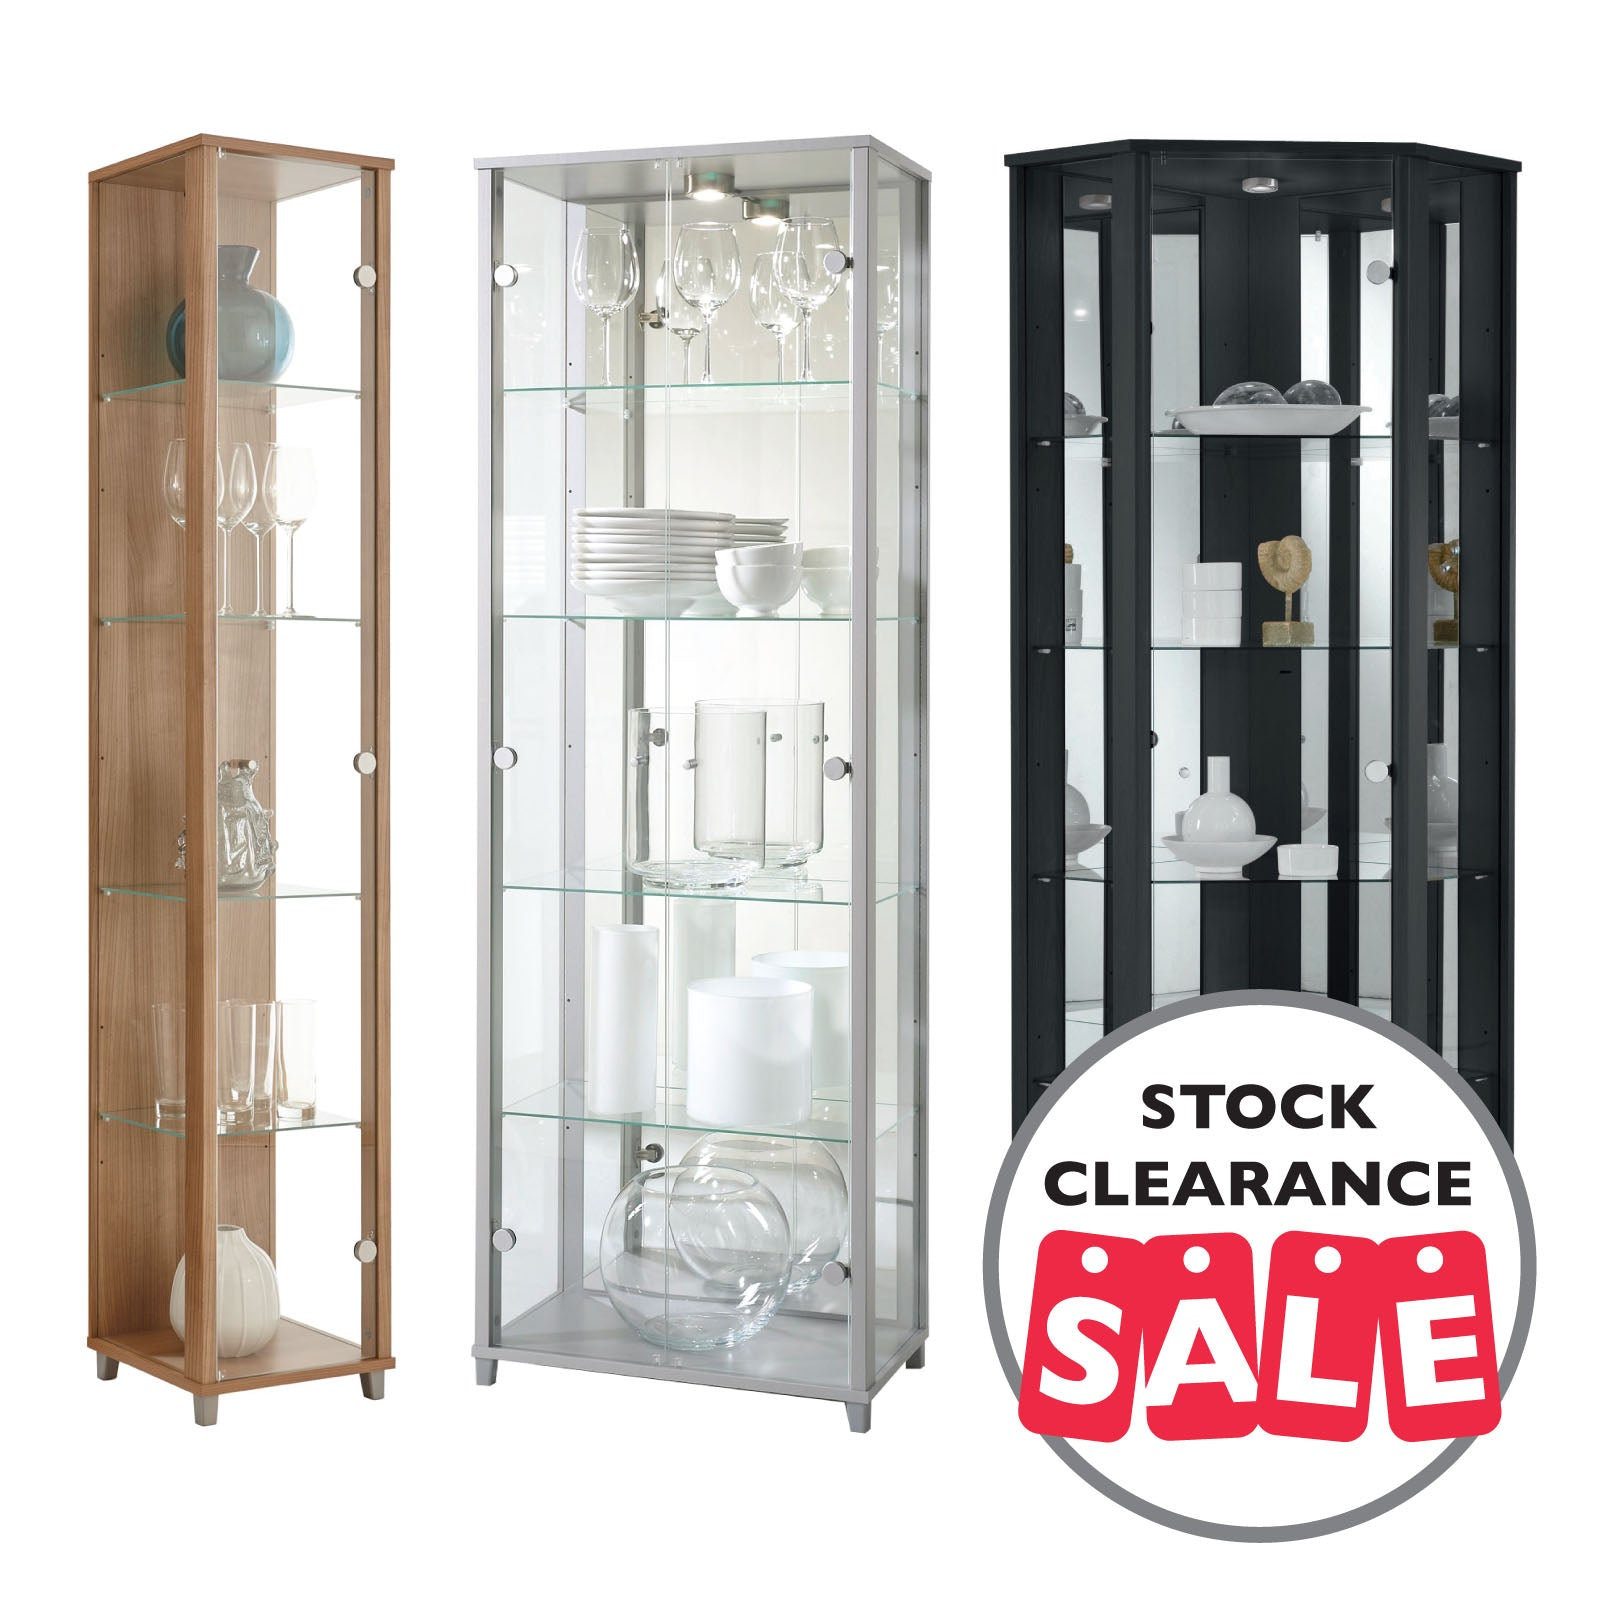 Reduced to Clear Display Cabinets – Display Cabinets UK